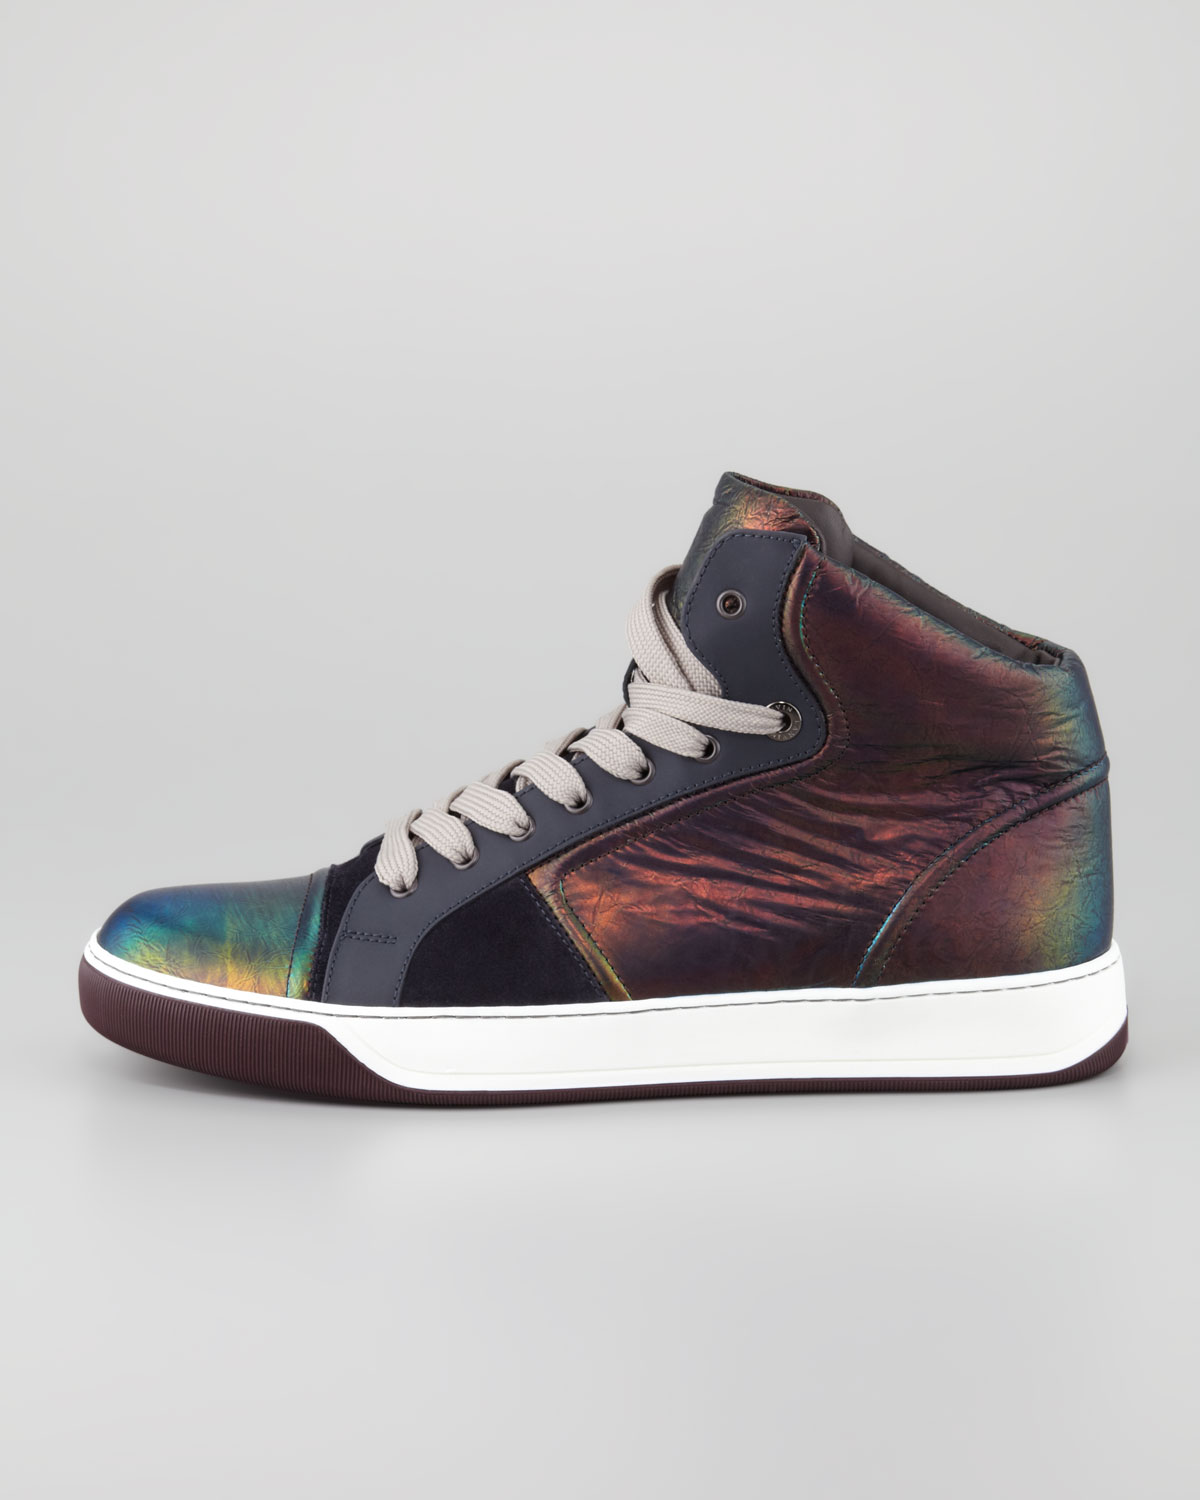 d967a17b01d8 Lyst - Lanvin Iridescent Leather Hightop Sneaker in Blue for Men